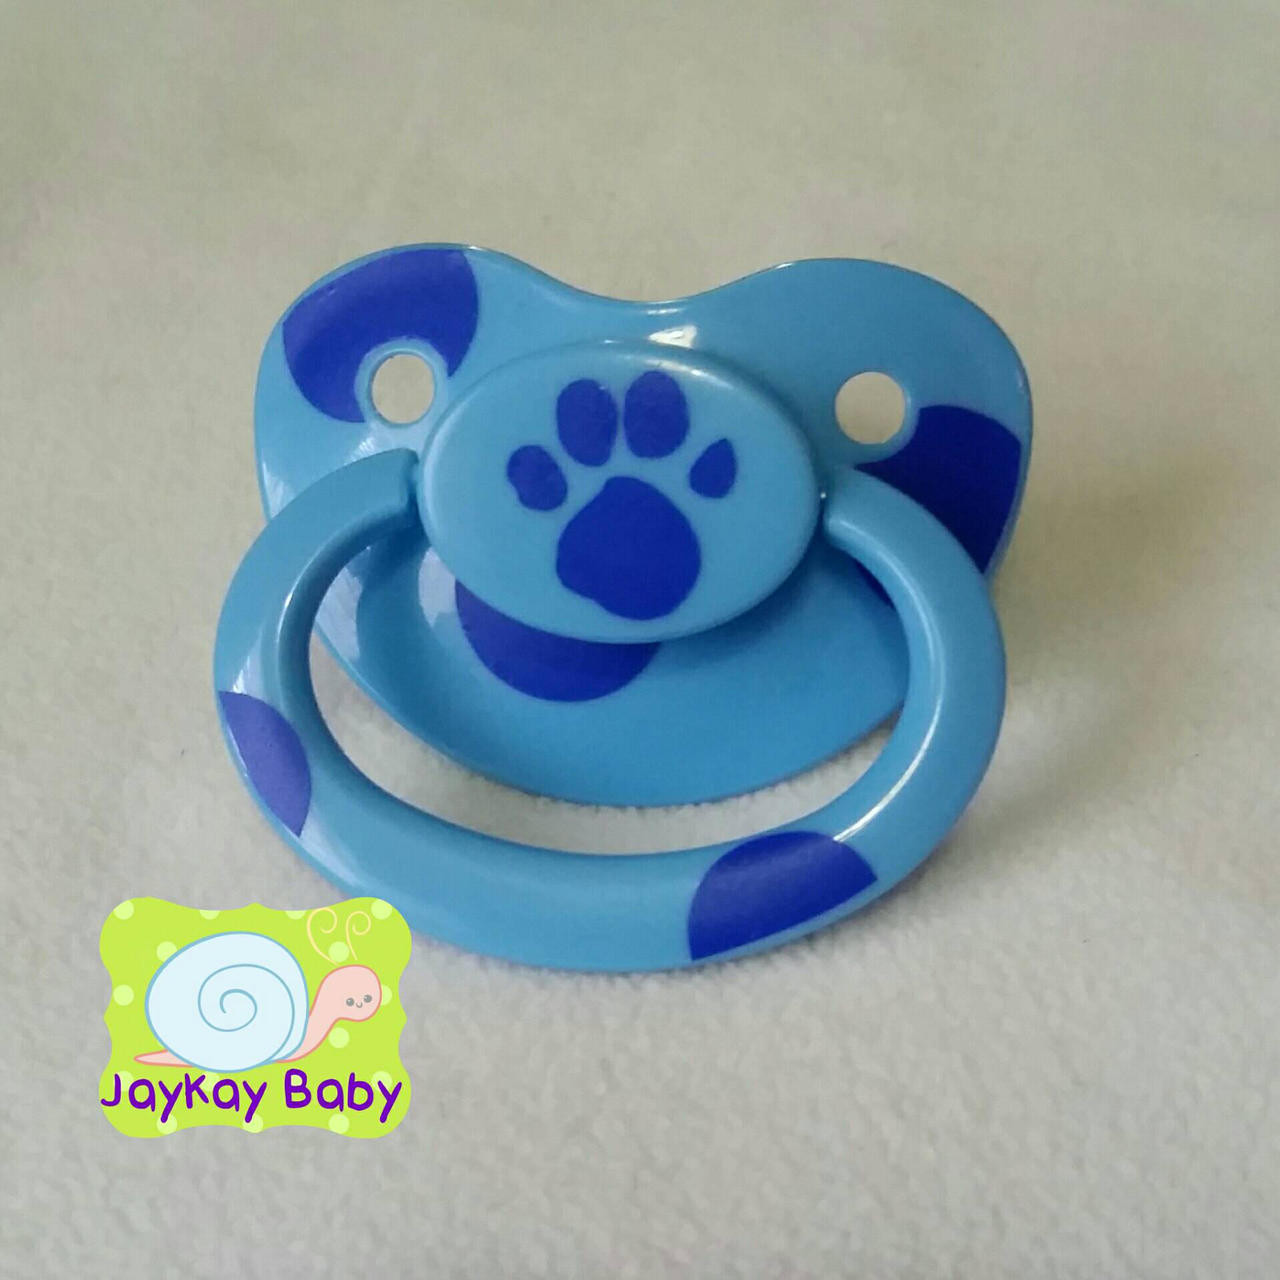 Blue's Clues Paw Print Themed Adult Pacifier - Jaykaybaby